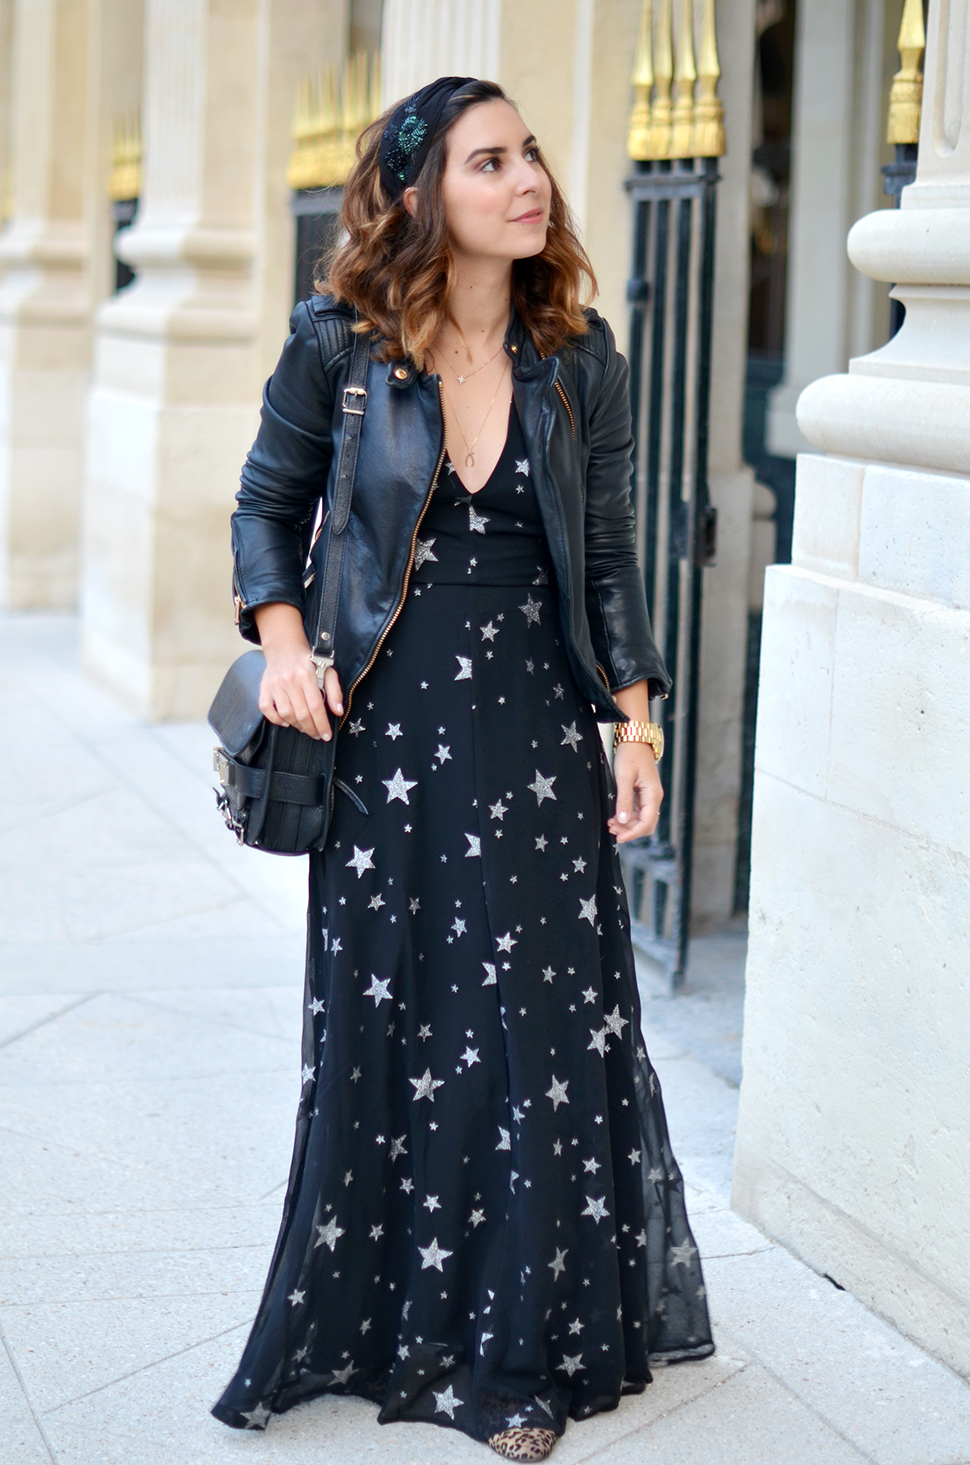 Helloitsvalentine_stars_dress_5